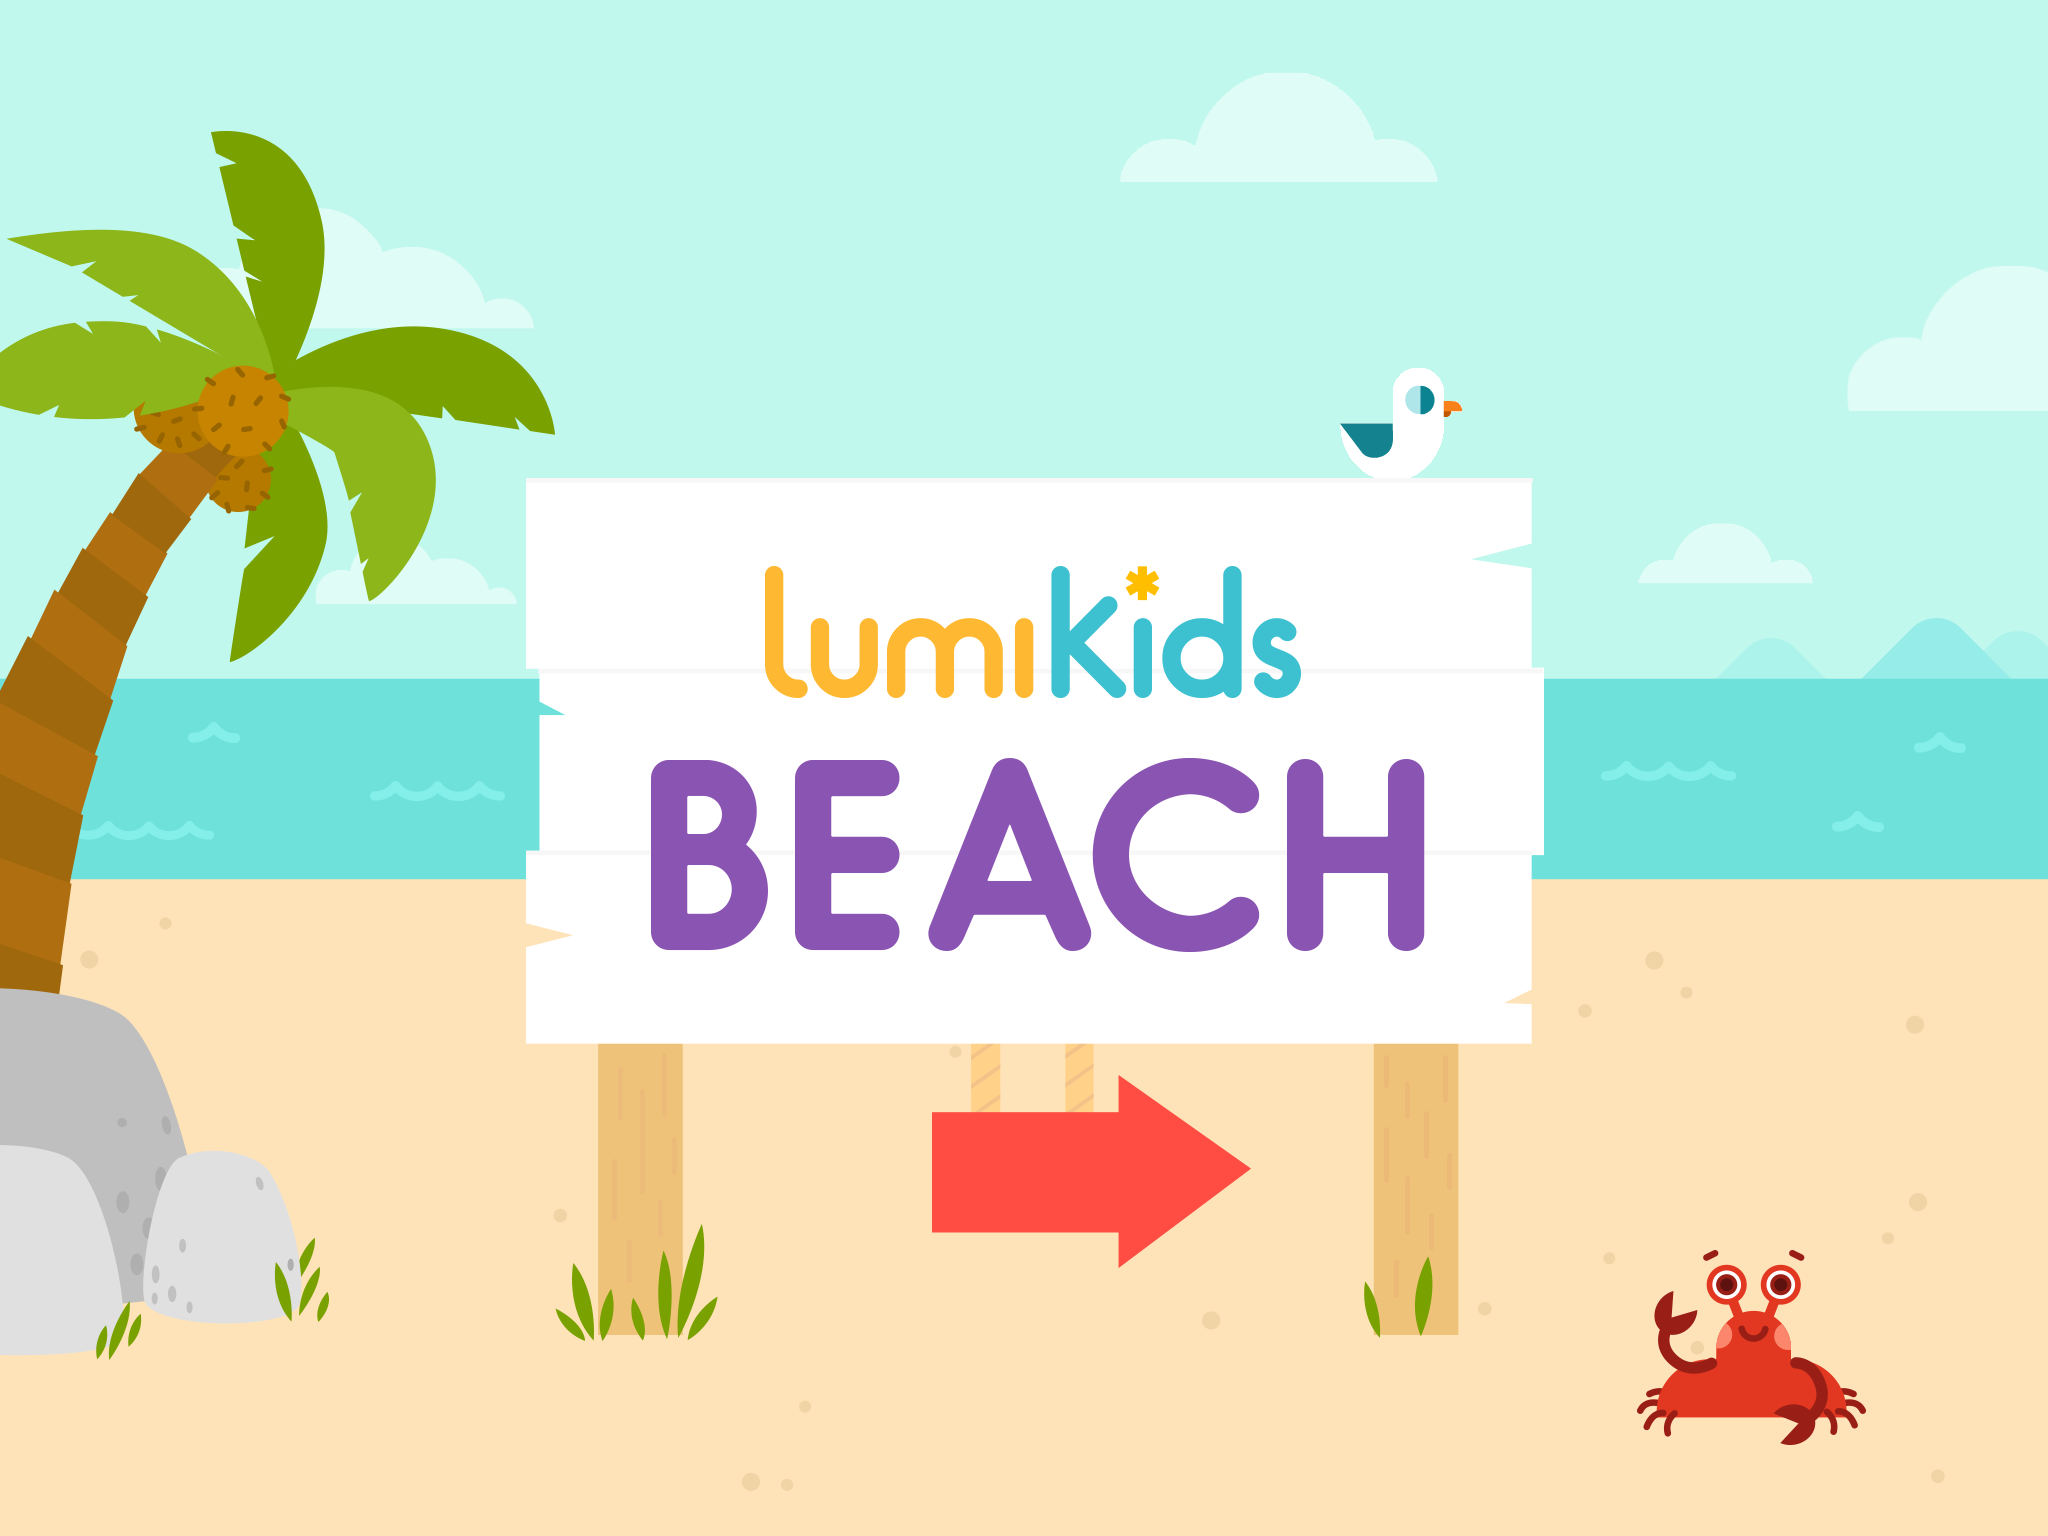 Lumosity's LumiKids announces its second game for young